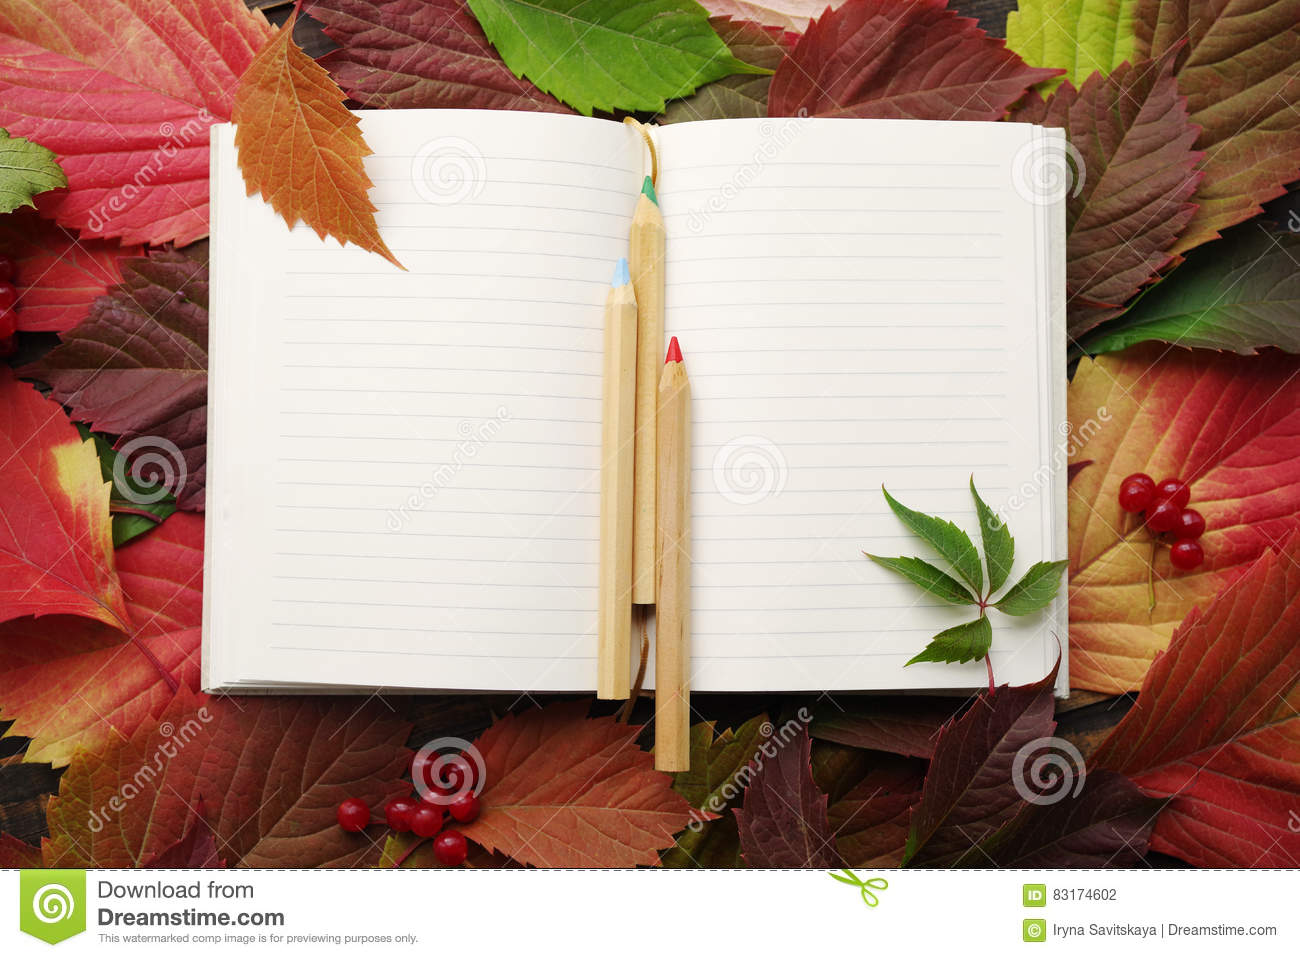 Blank pages to color on - Notebook With Blank Pages And A Wooden Color Pencils On Autumn Leaves